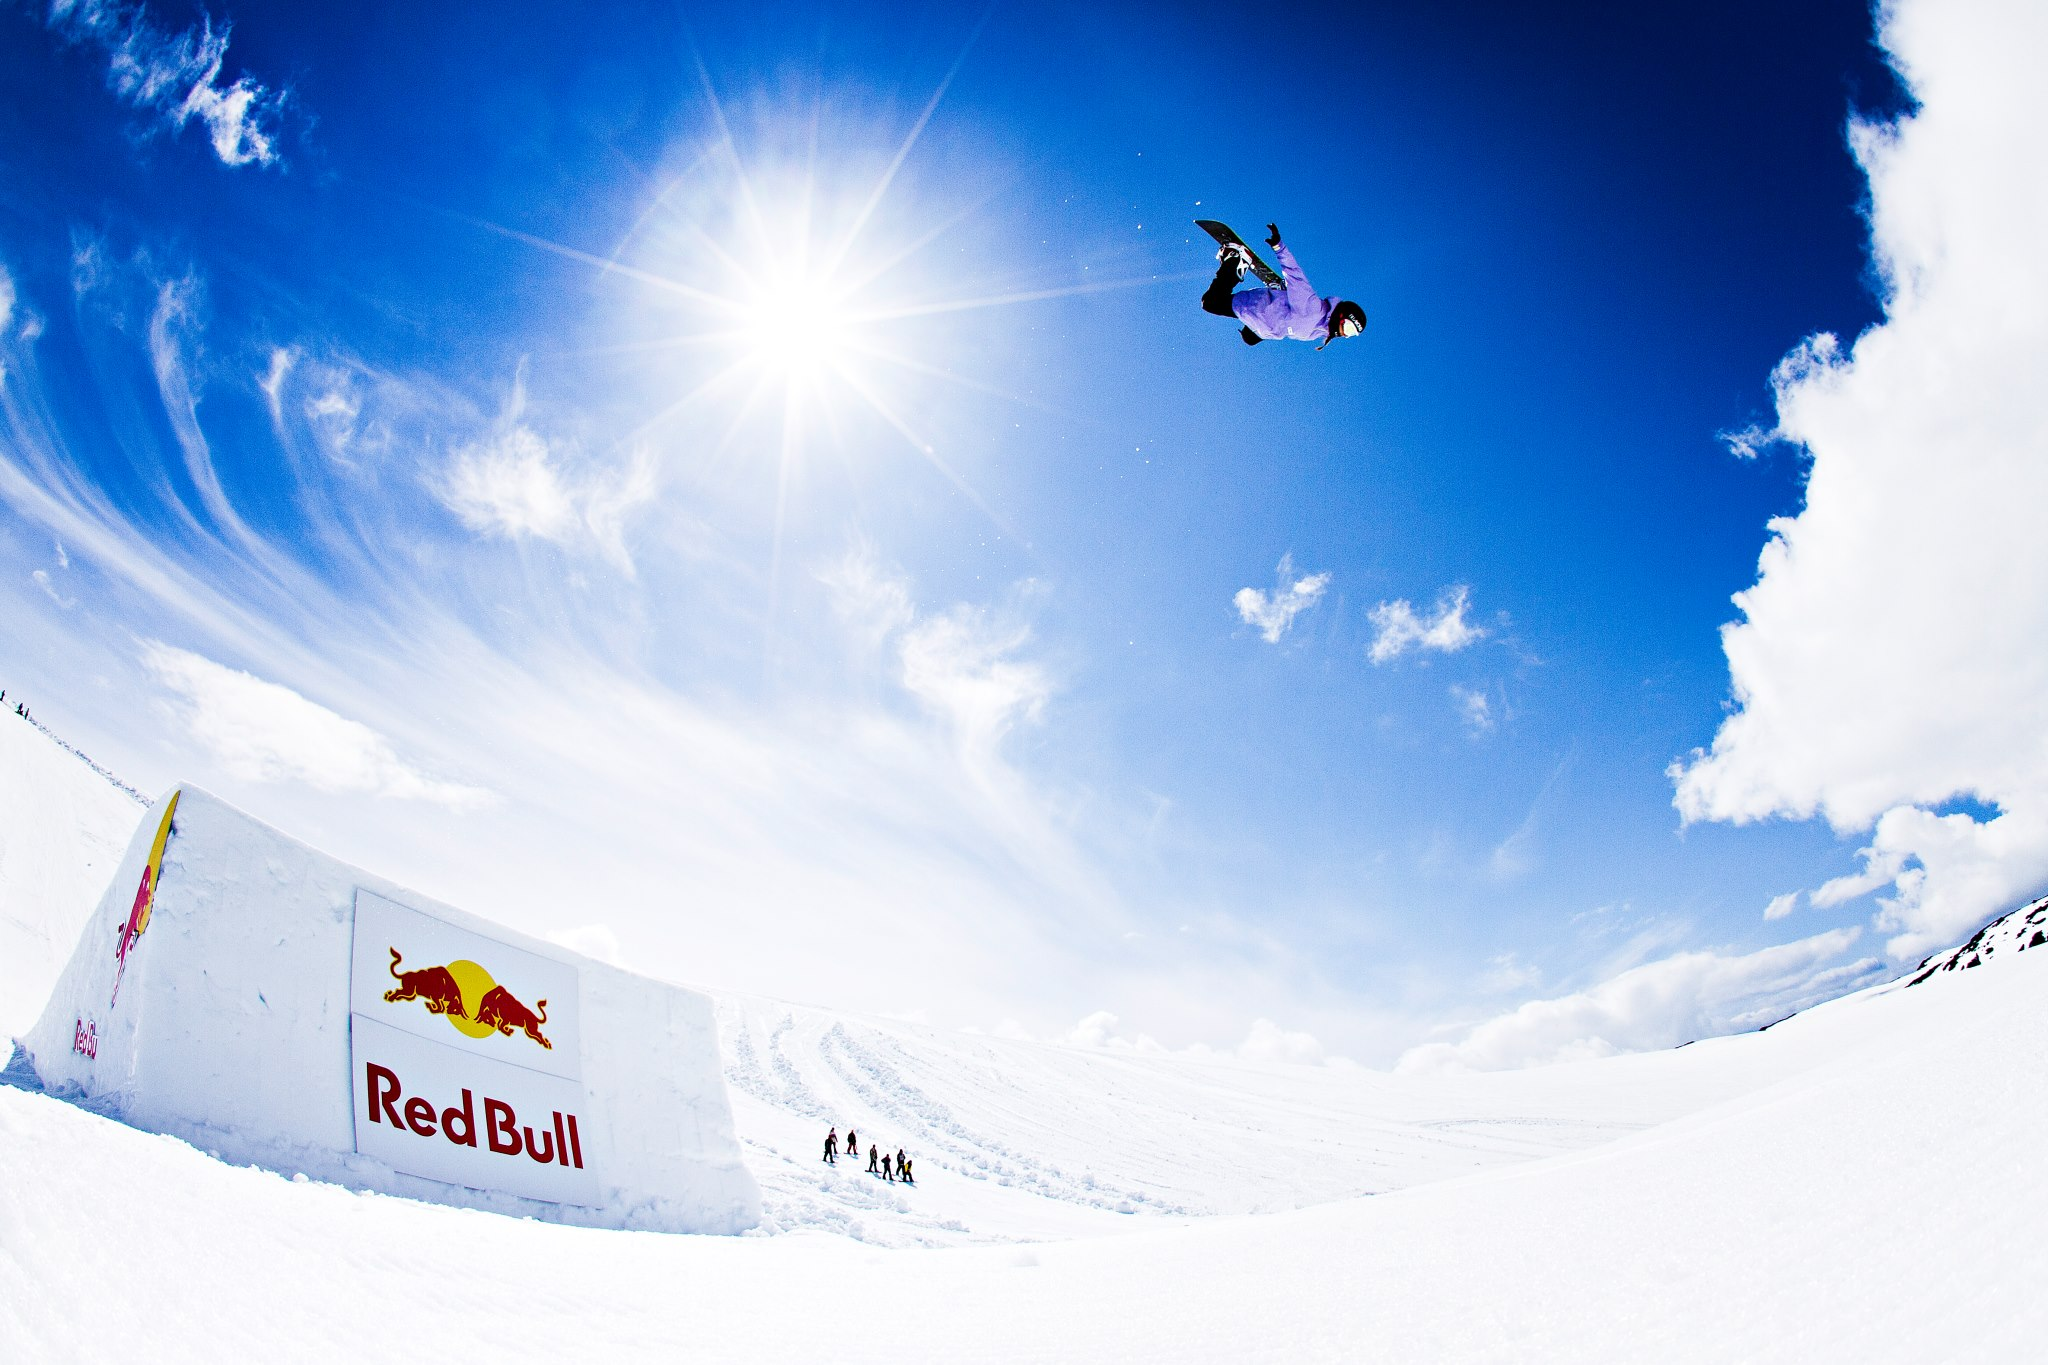 Snowboard Red Bull